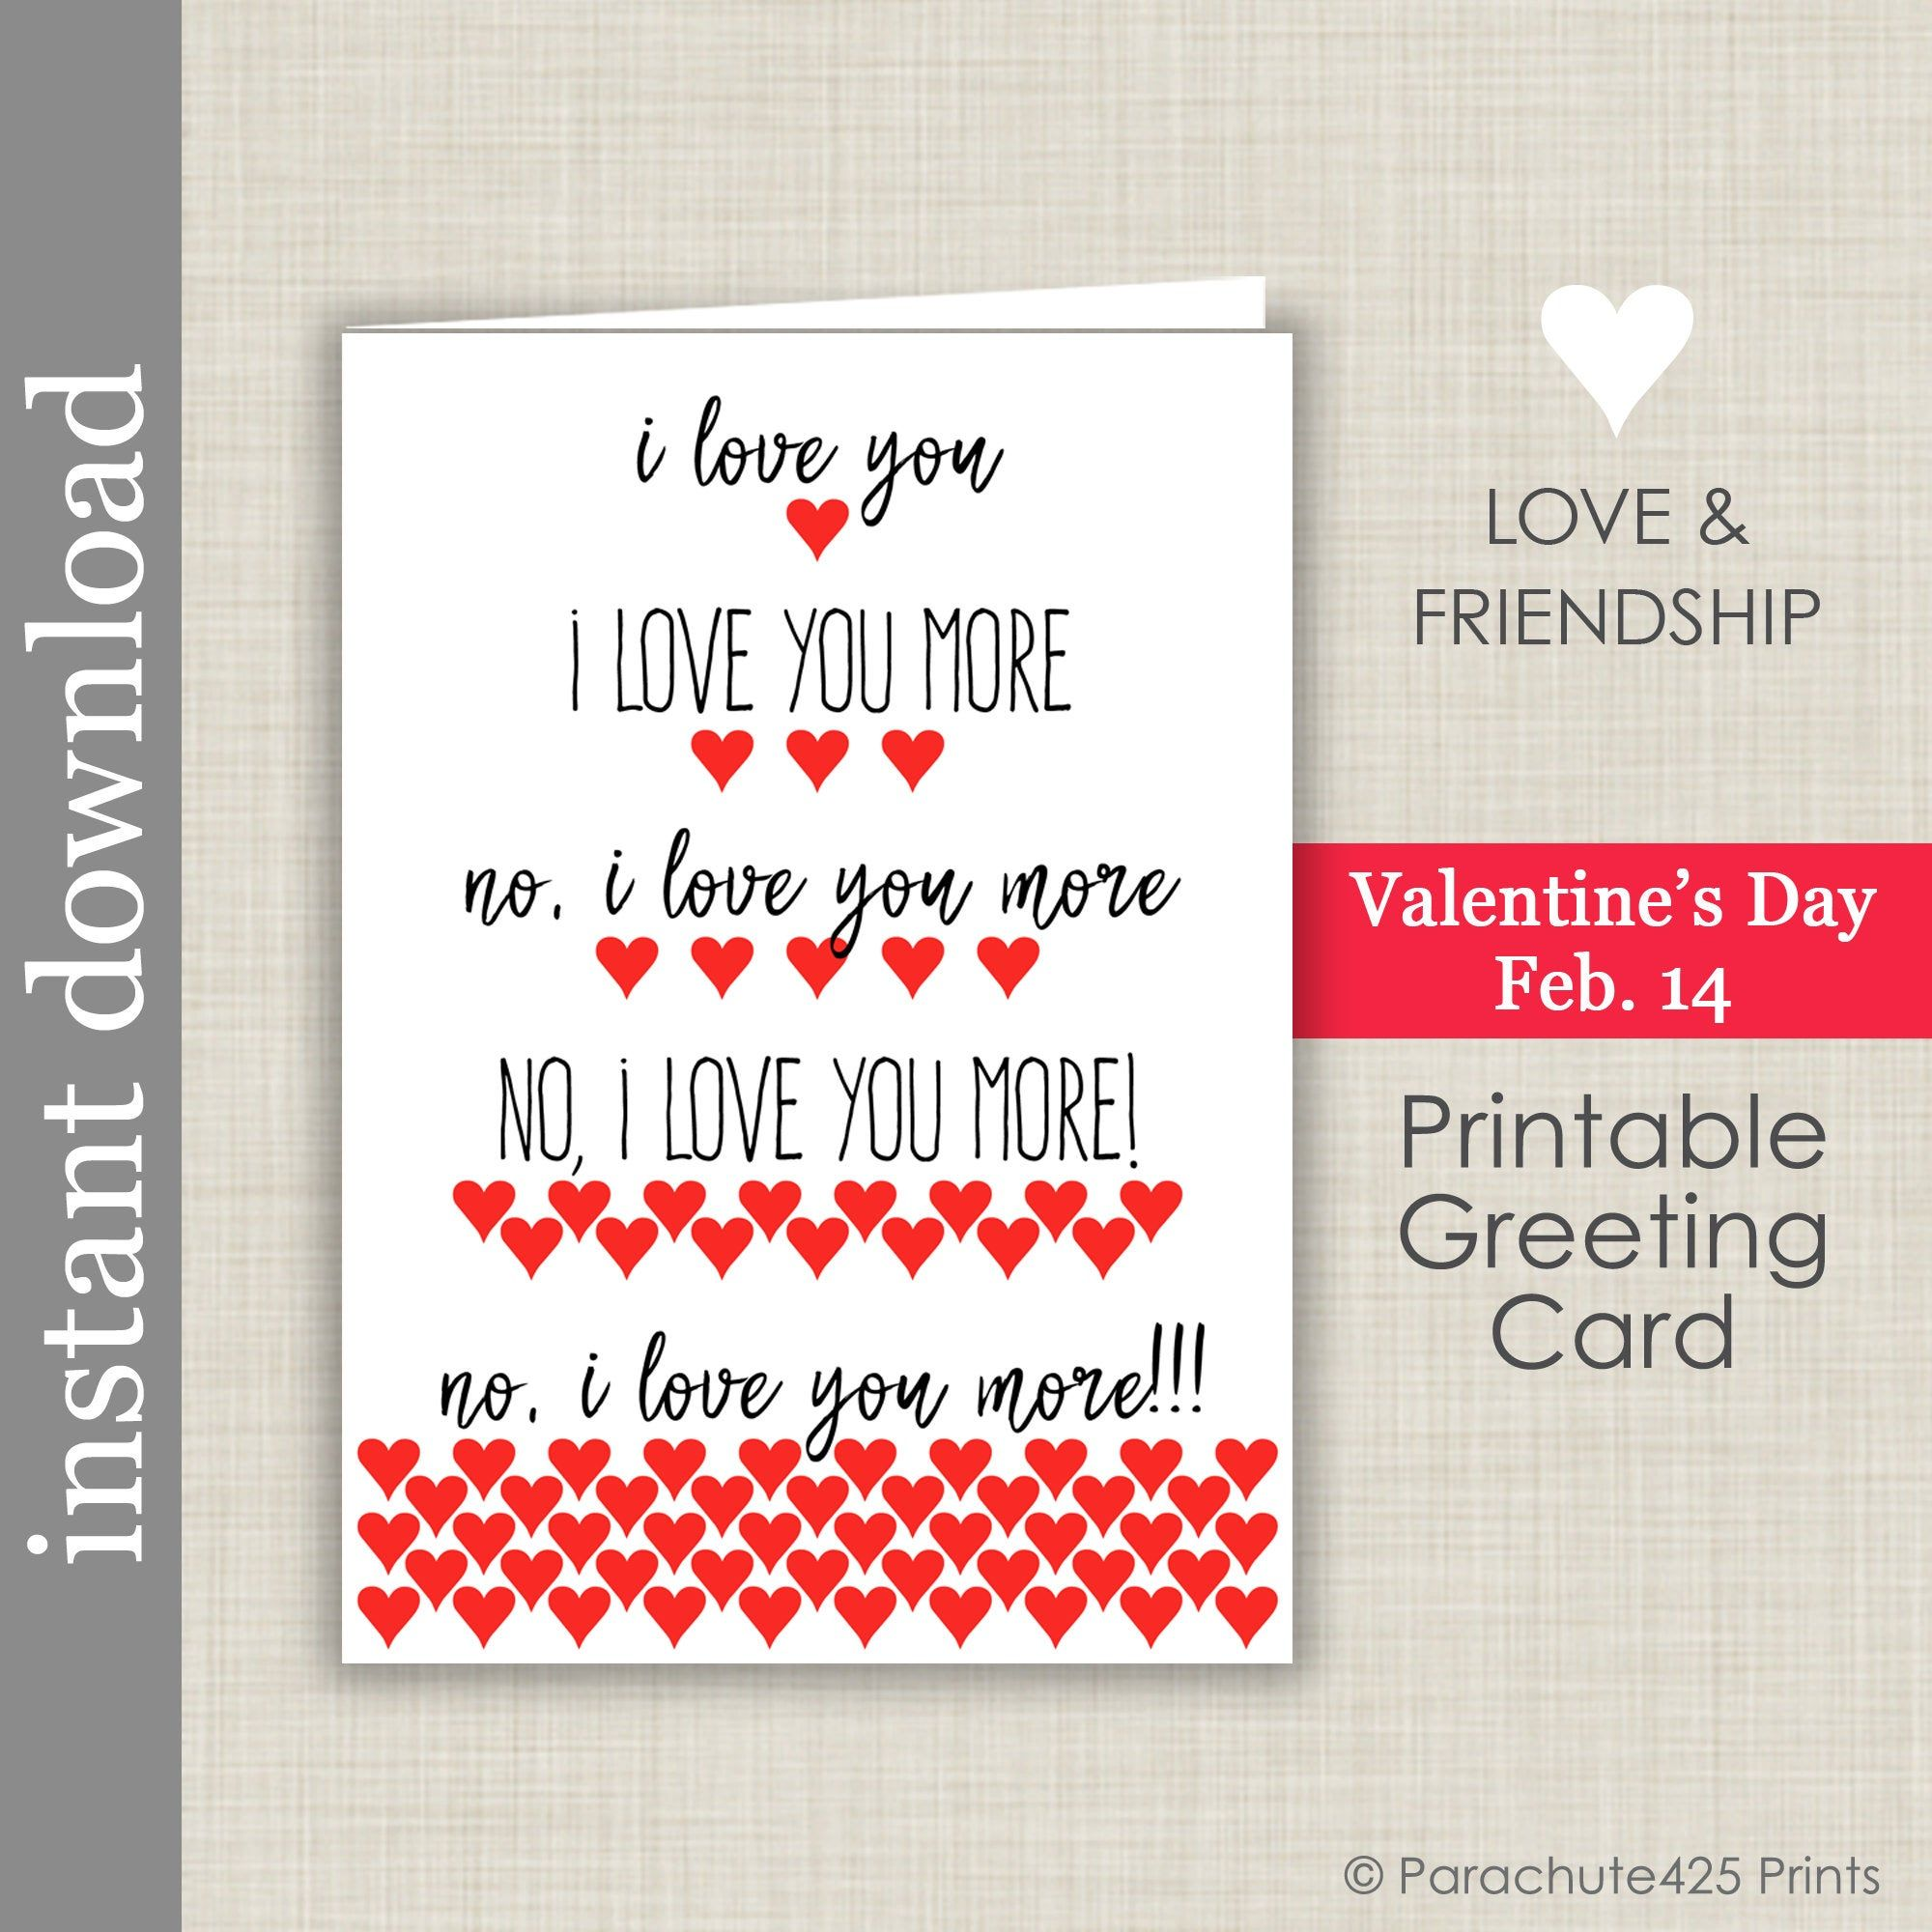 I Love You More Printable Anniversary Card Romantic Valentine Card Sweetest Day Card Printable Anniversary Cards Romantic Valentine Card Anniversary Cards